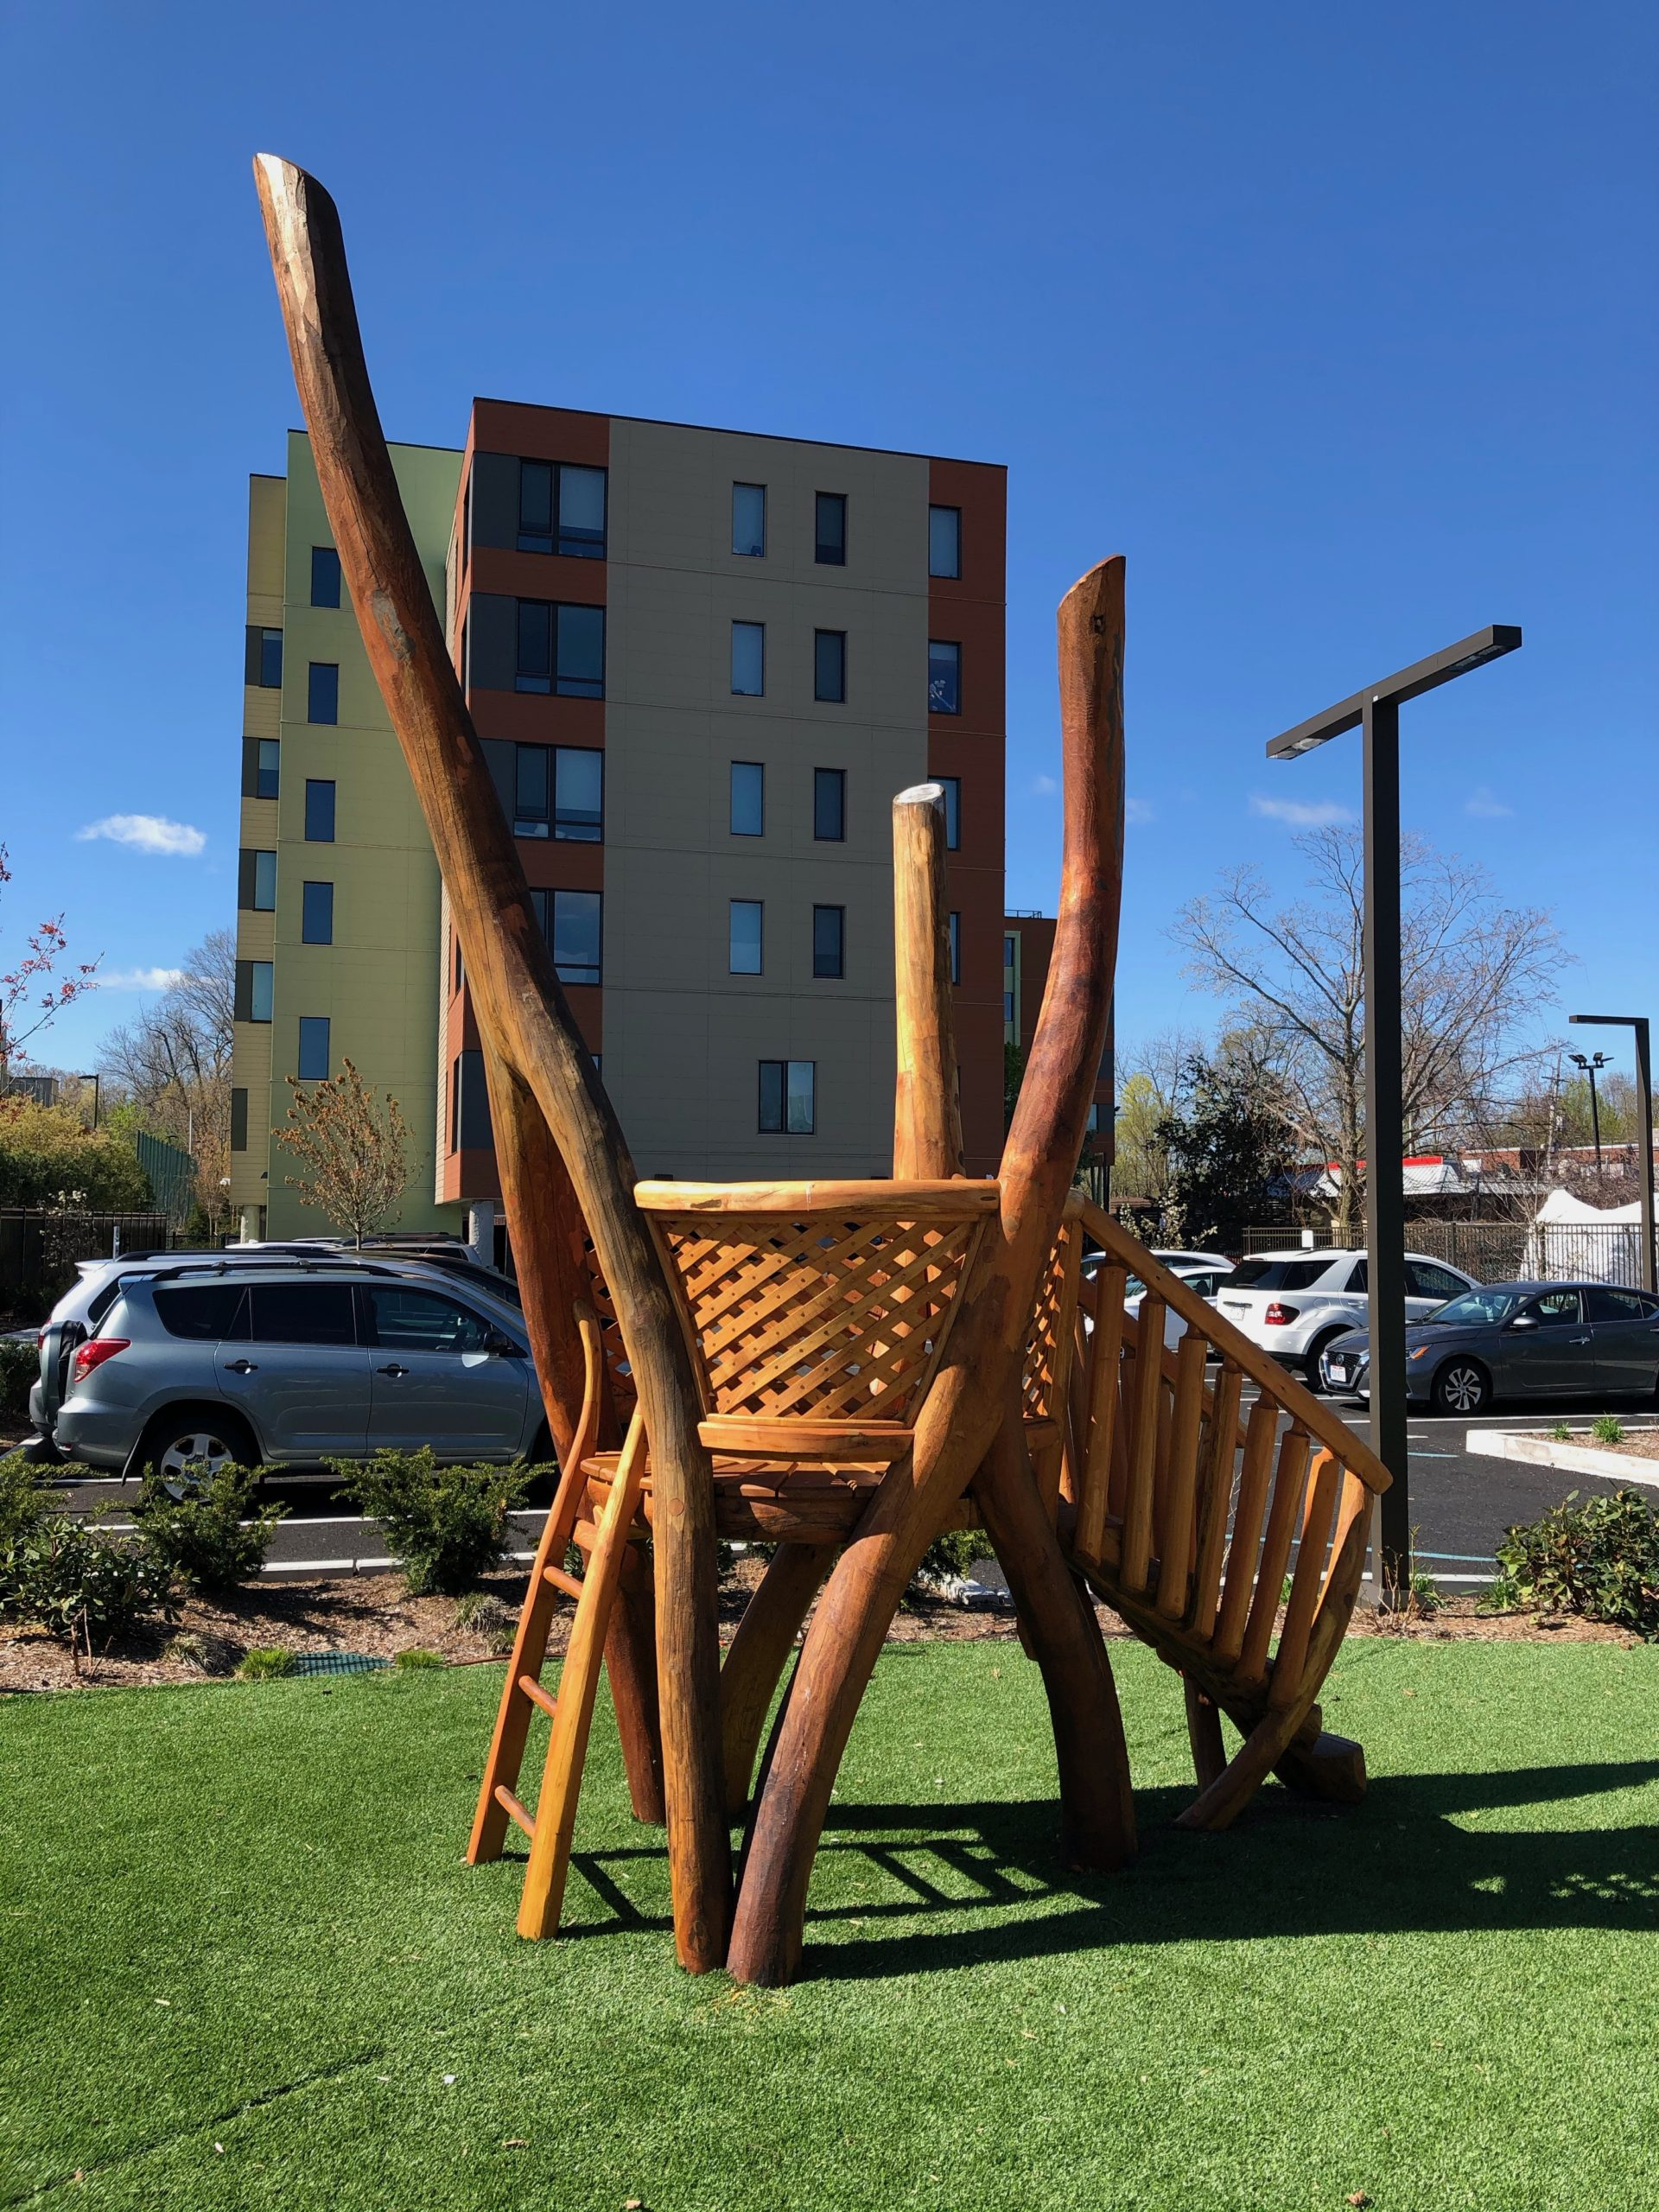 A beautiful play structure in the pocket park